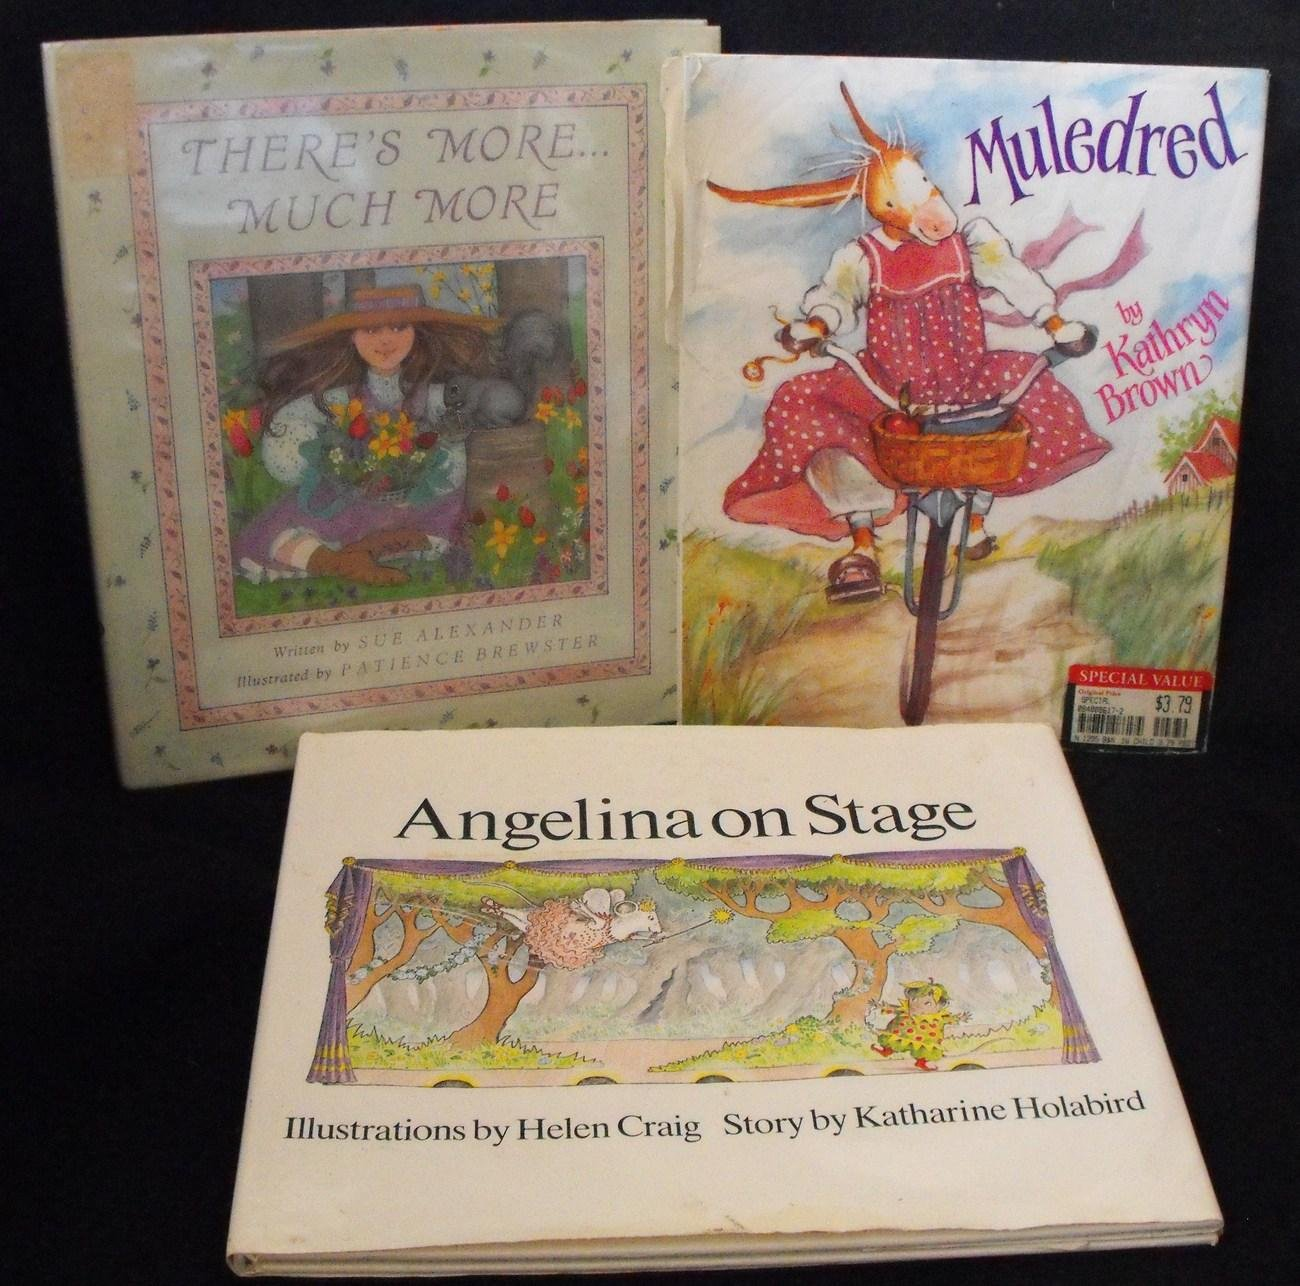 3 GIRLS HARDCOVER BOOK LOT MULEDRED, ANGELINA BALLERINA +